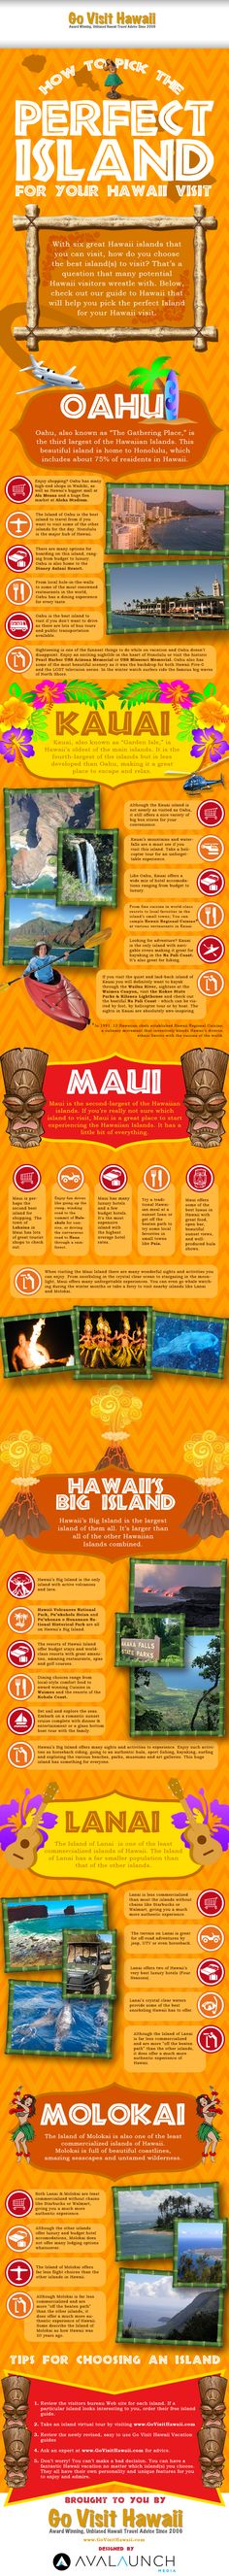 Hawaiian Vacation: Which Island To Visit?  This is a great infographic for learning which island in Hawaii is the one of your dreams!